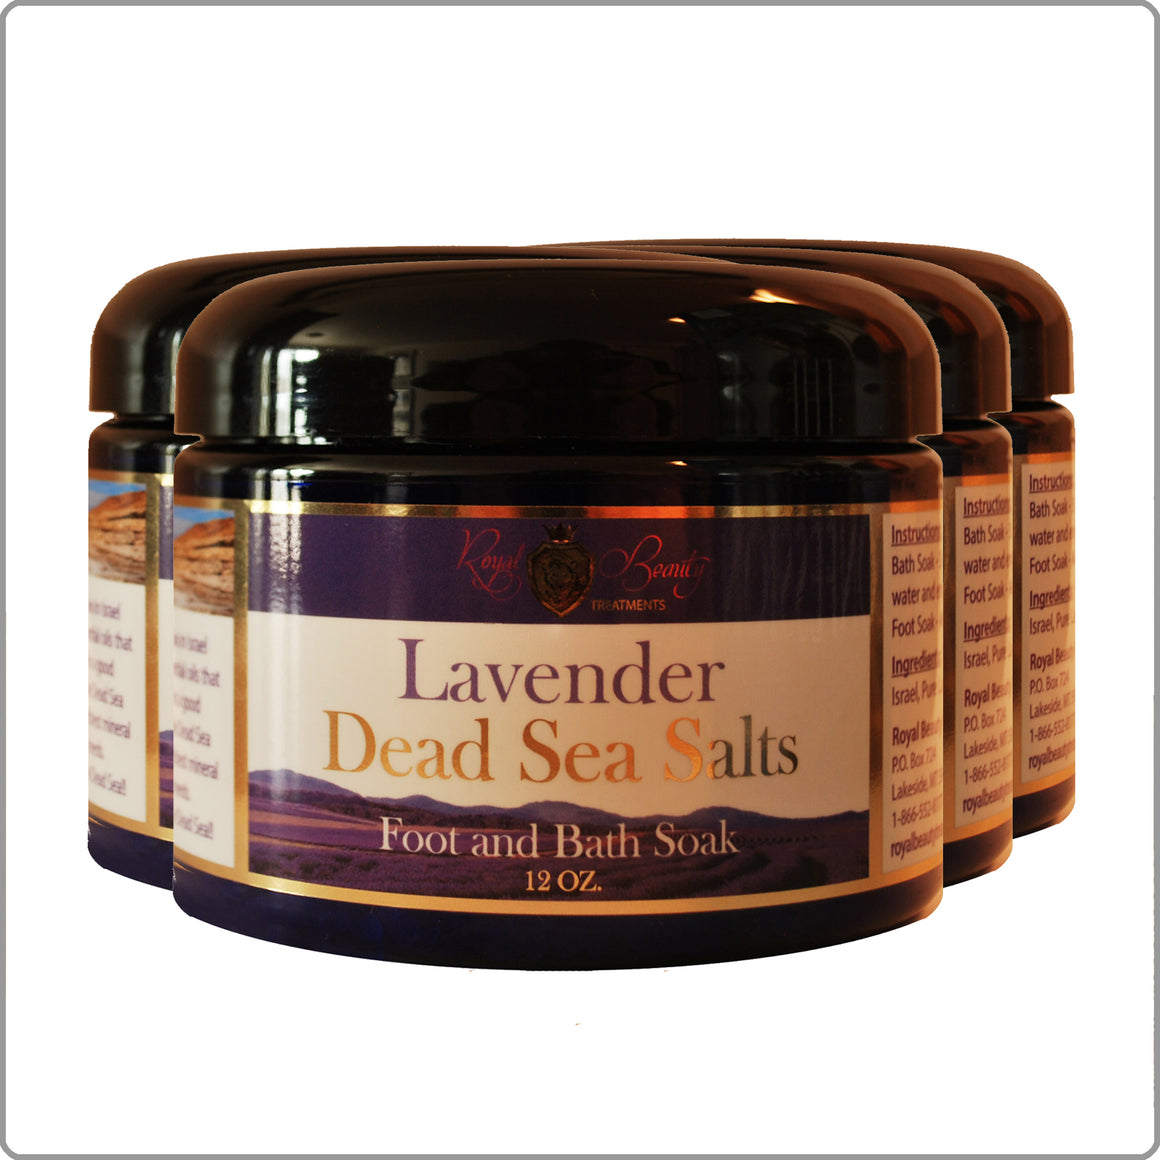 12oz. Lavender Dead Sea Salts 4 Pack WITH FREE SHIPPING!